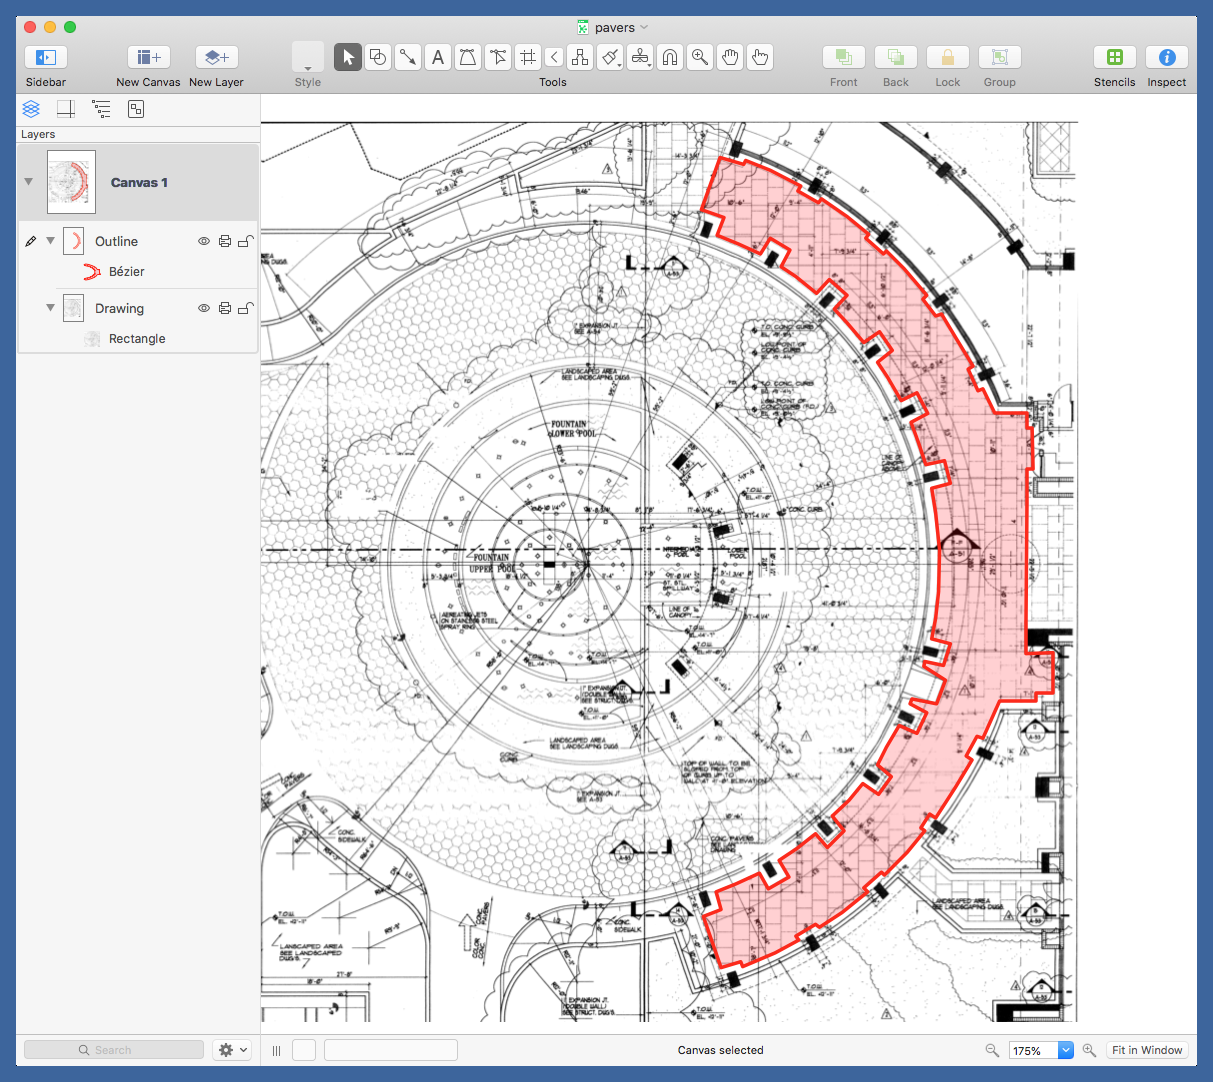 Outline in OmniGraffle